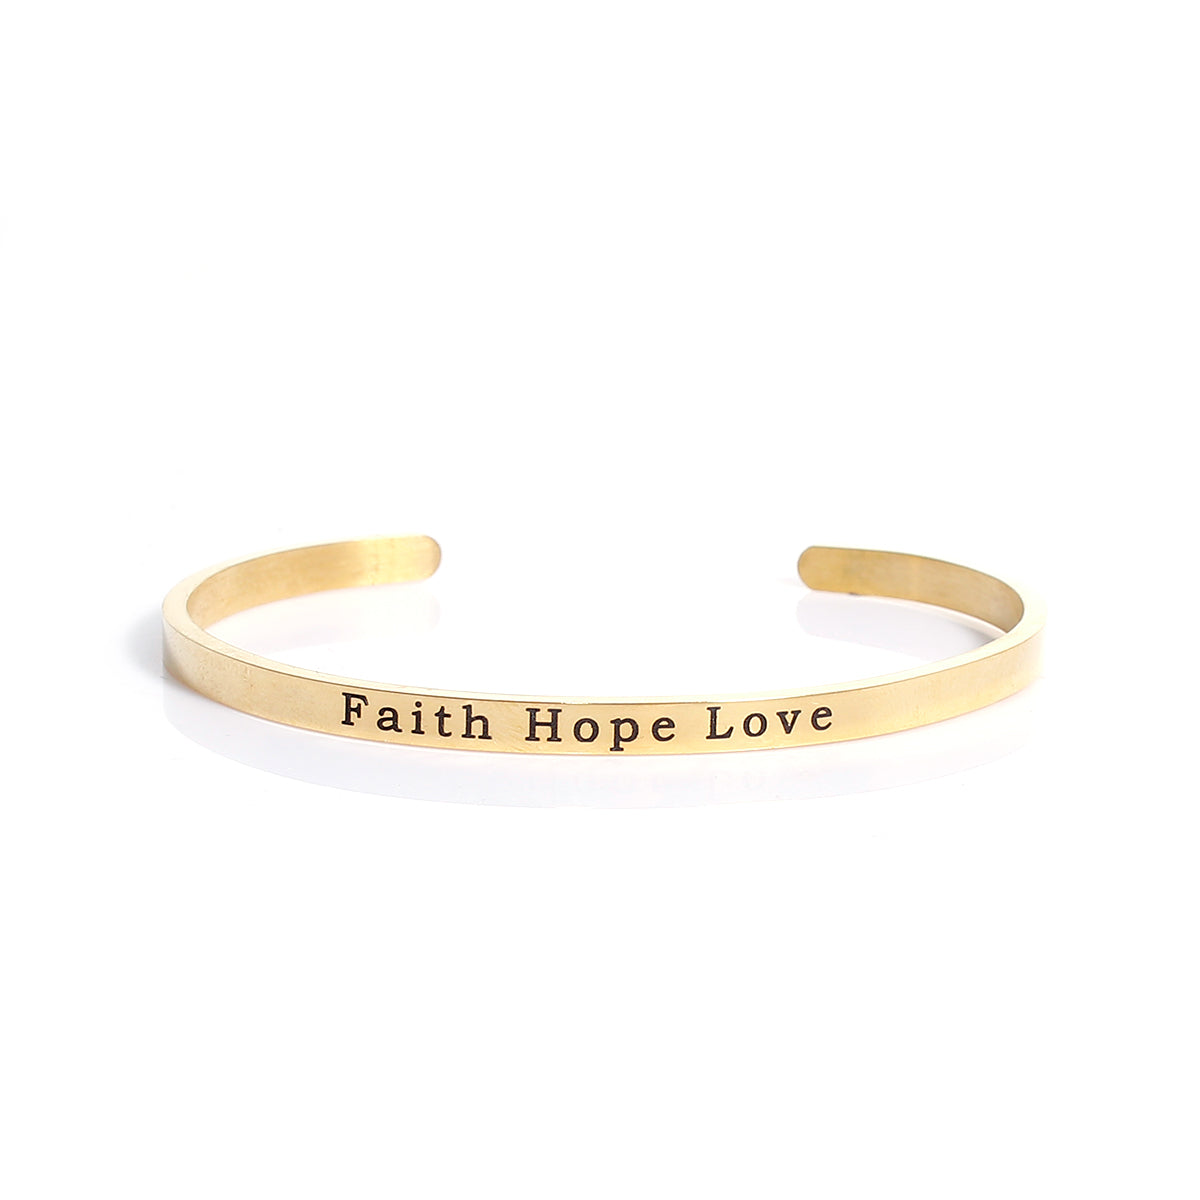 4a1672e7311bc Faith Hope Love Gold Plated Stainless Steel Stacking Bangle Bracelet  Inspirational Quote Bracelet Positive Energy Cuff Bracelet